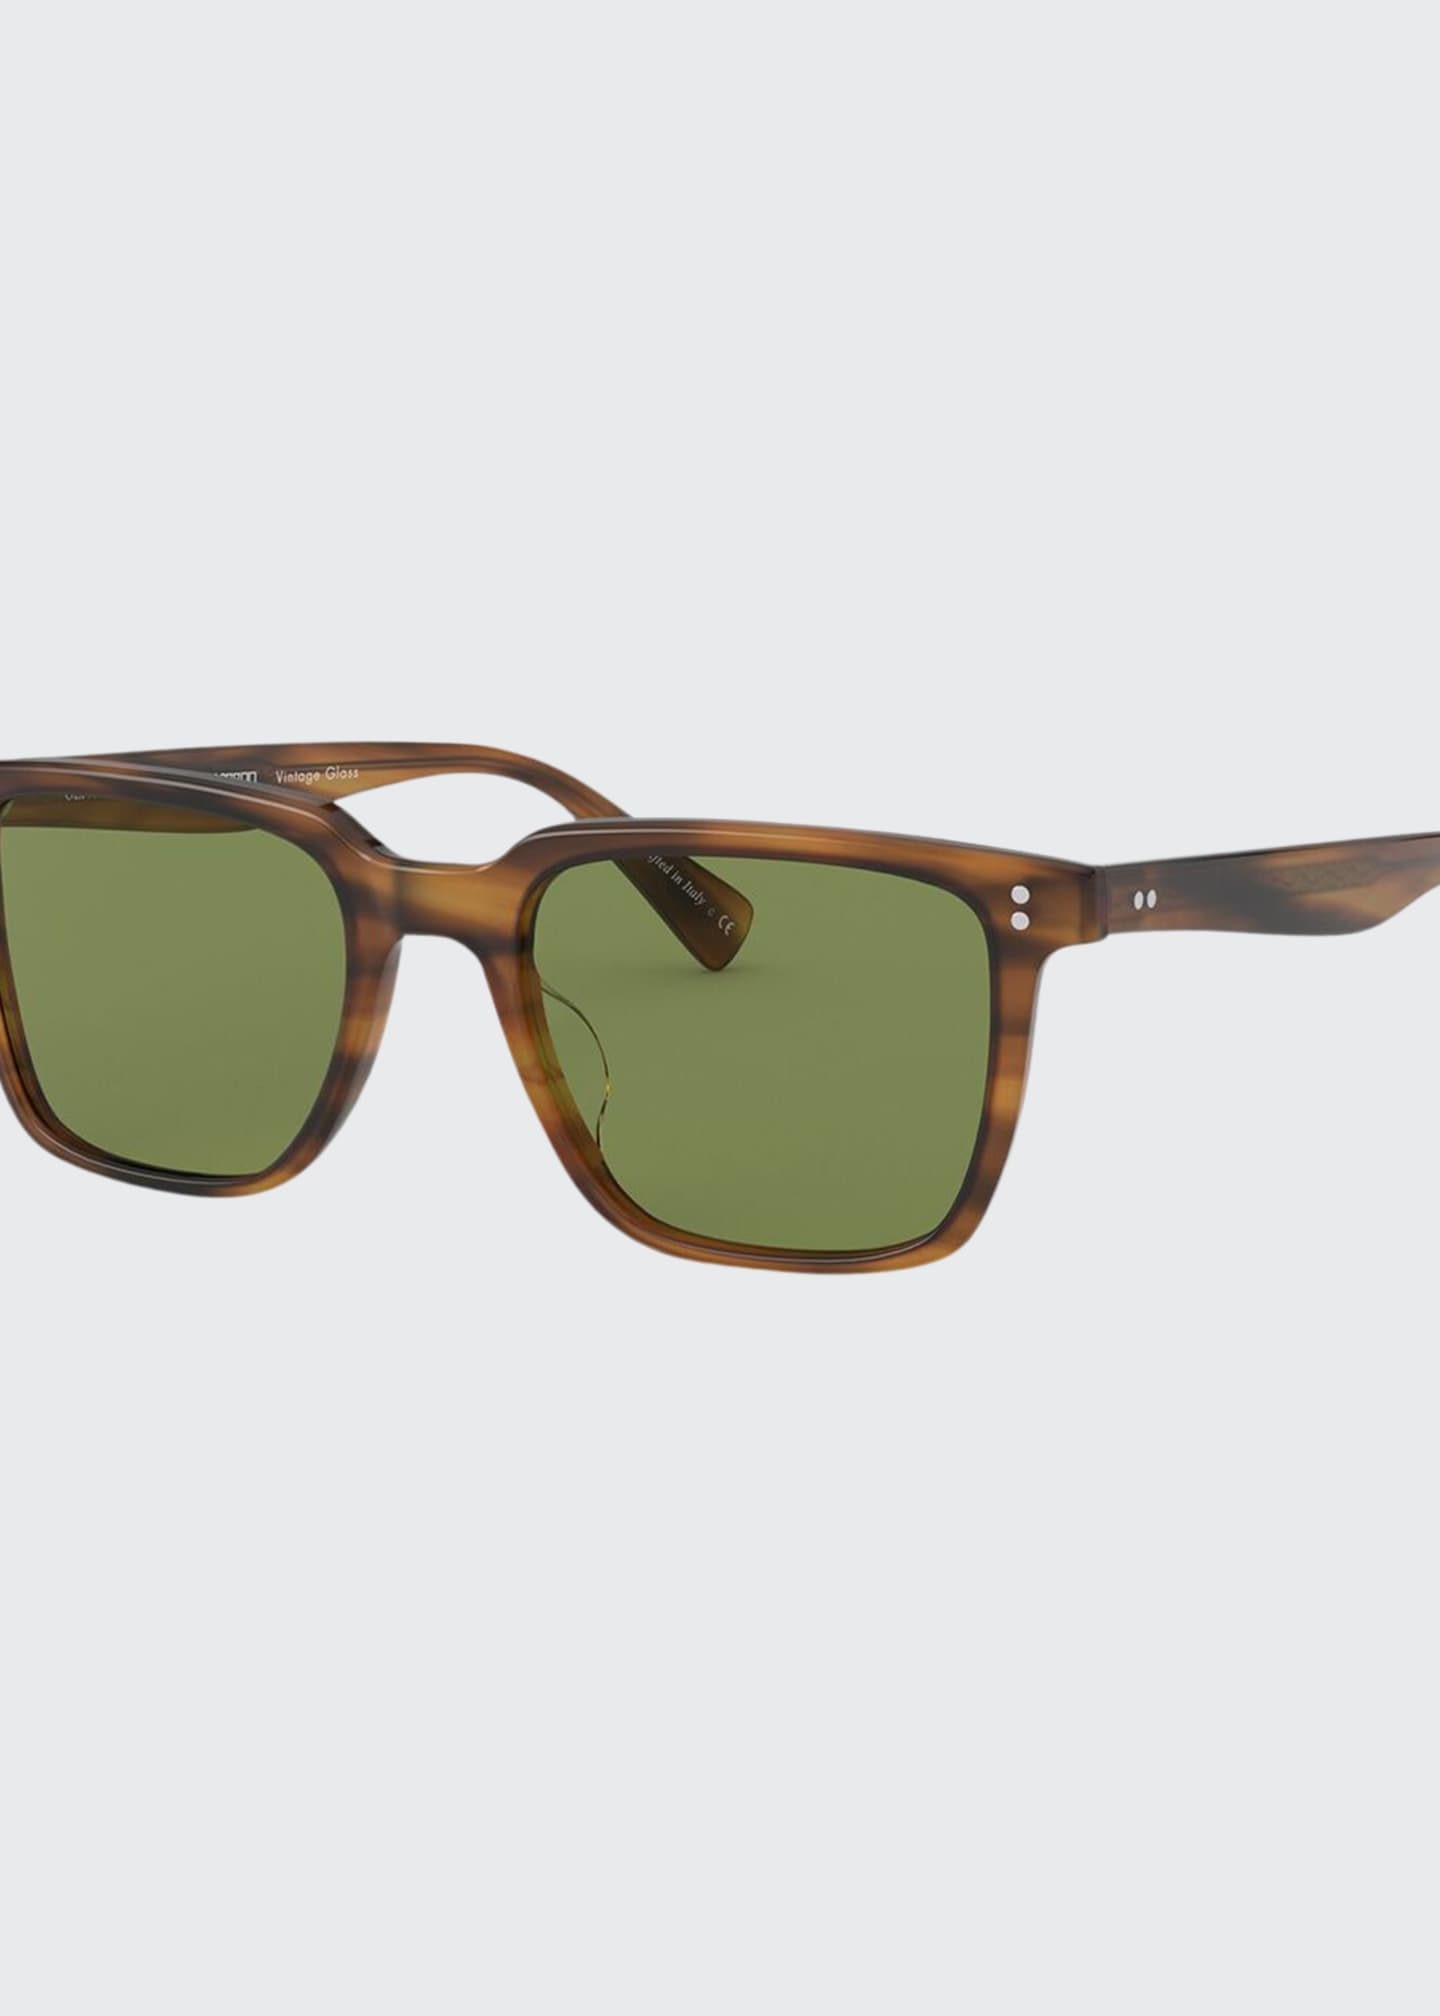 Oliver Peoples Men's Lachman Square Acetate Sunglasses